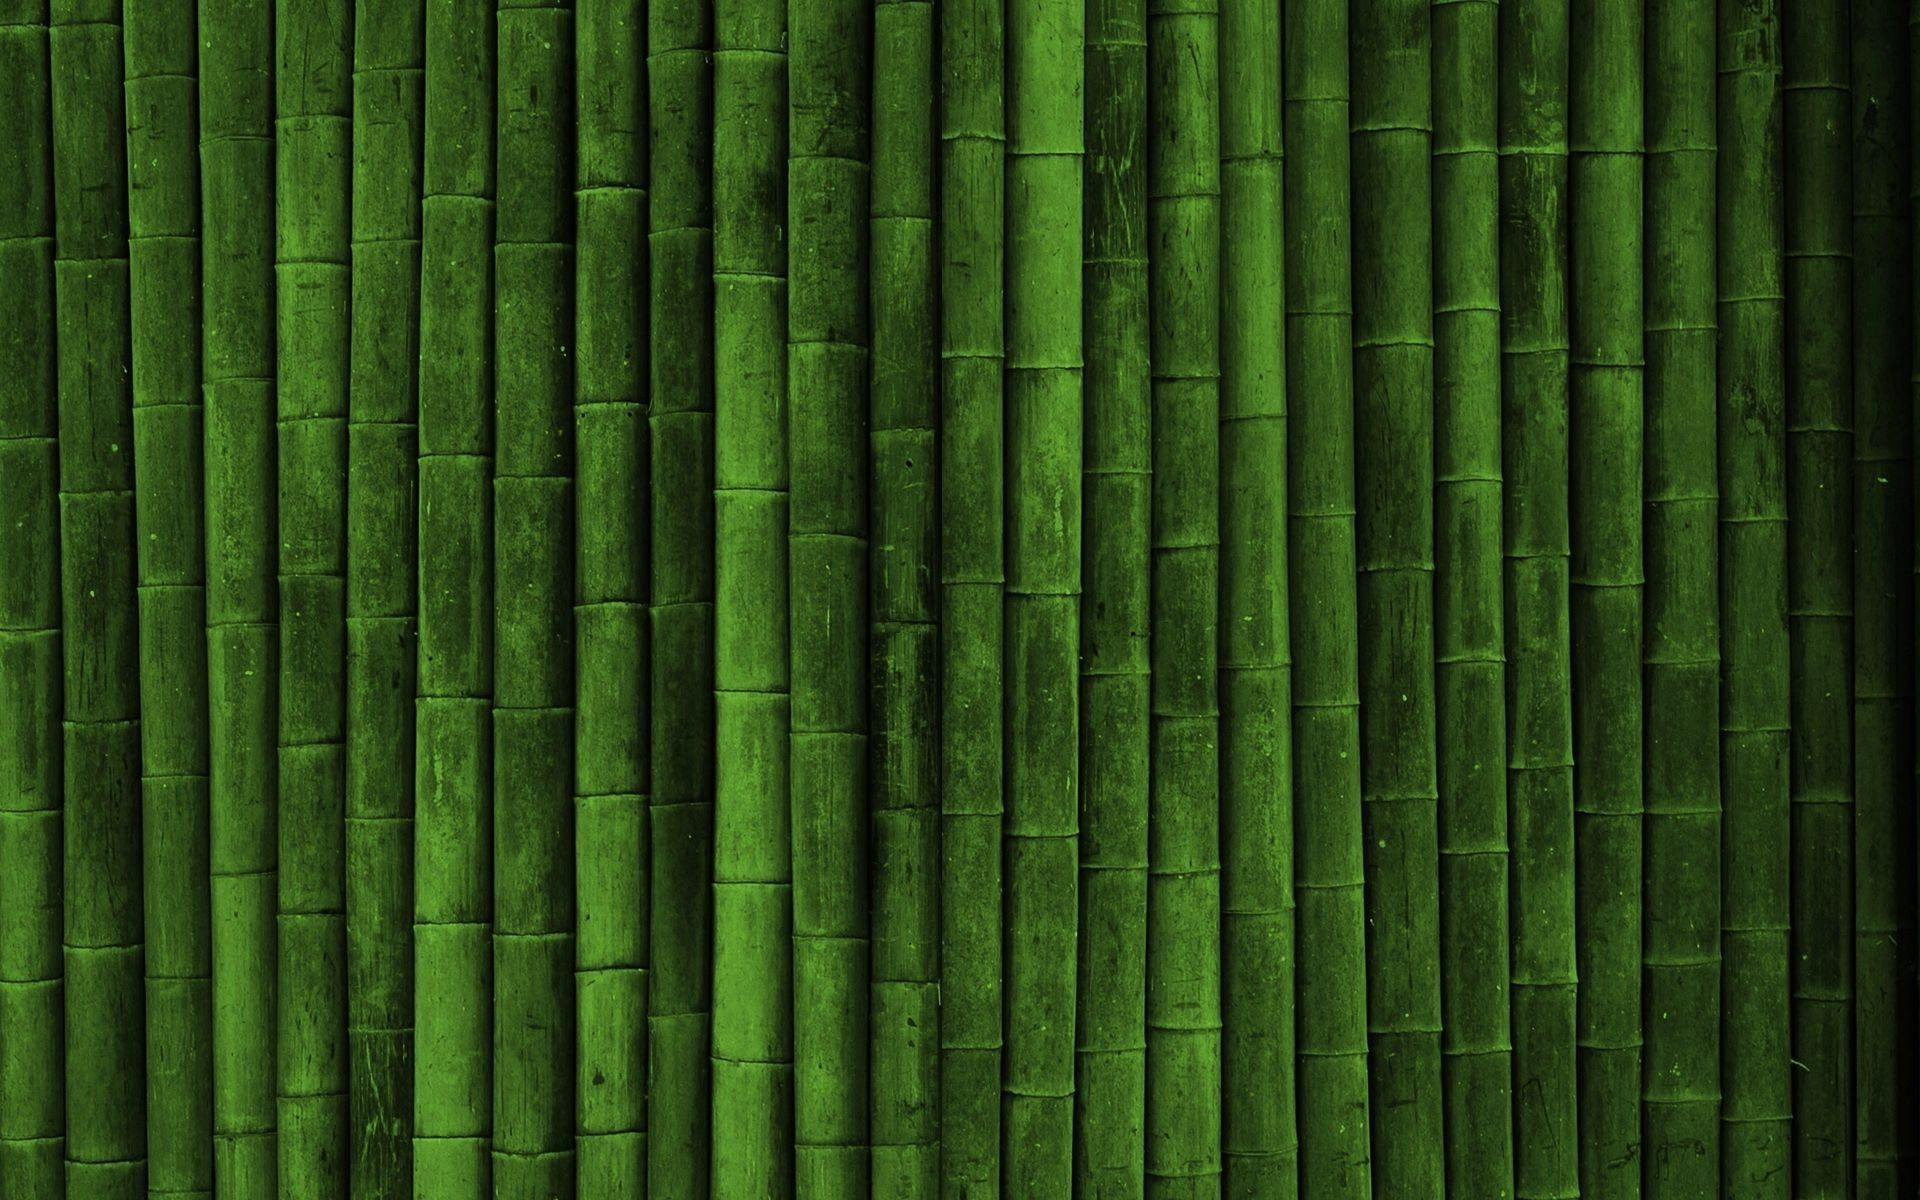 bamboo-wall-digital-art-hd-wallpaper-1920x1200-6370